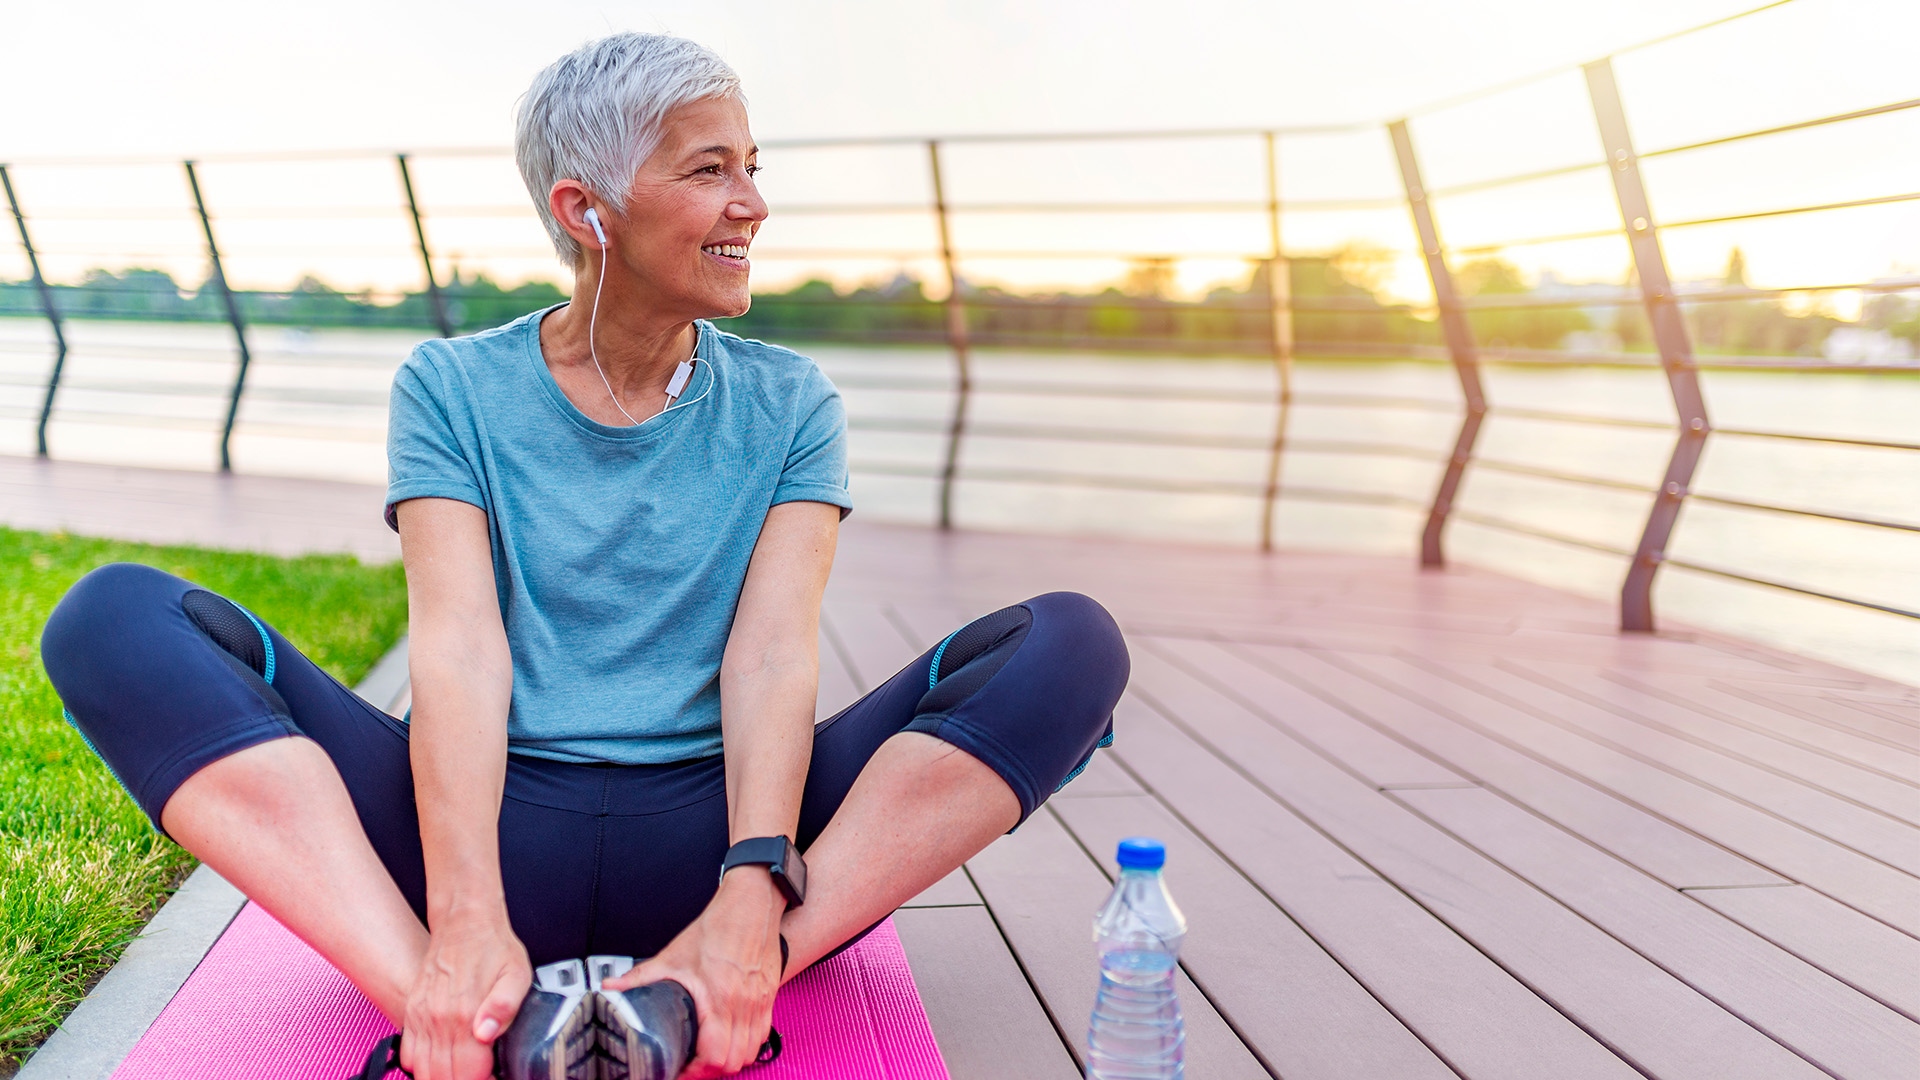 When it Comes to Kegels, Consistency Matters